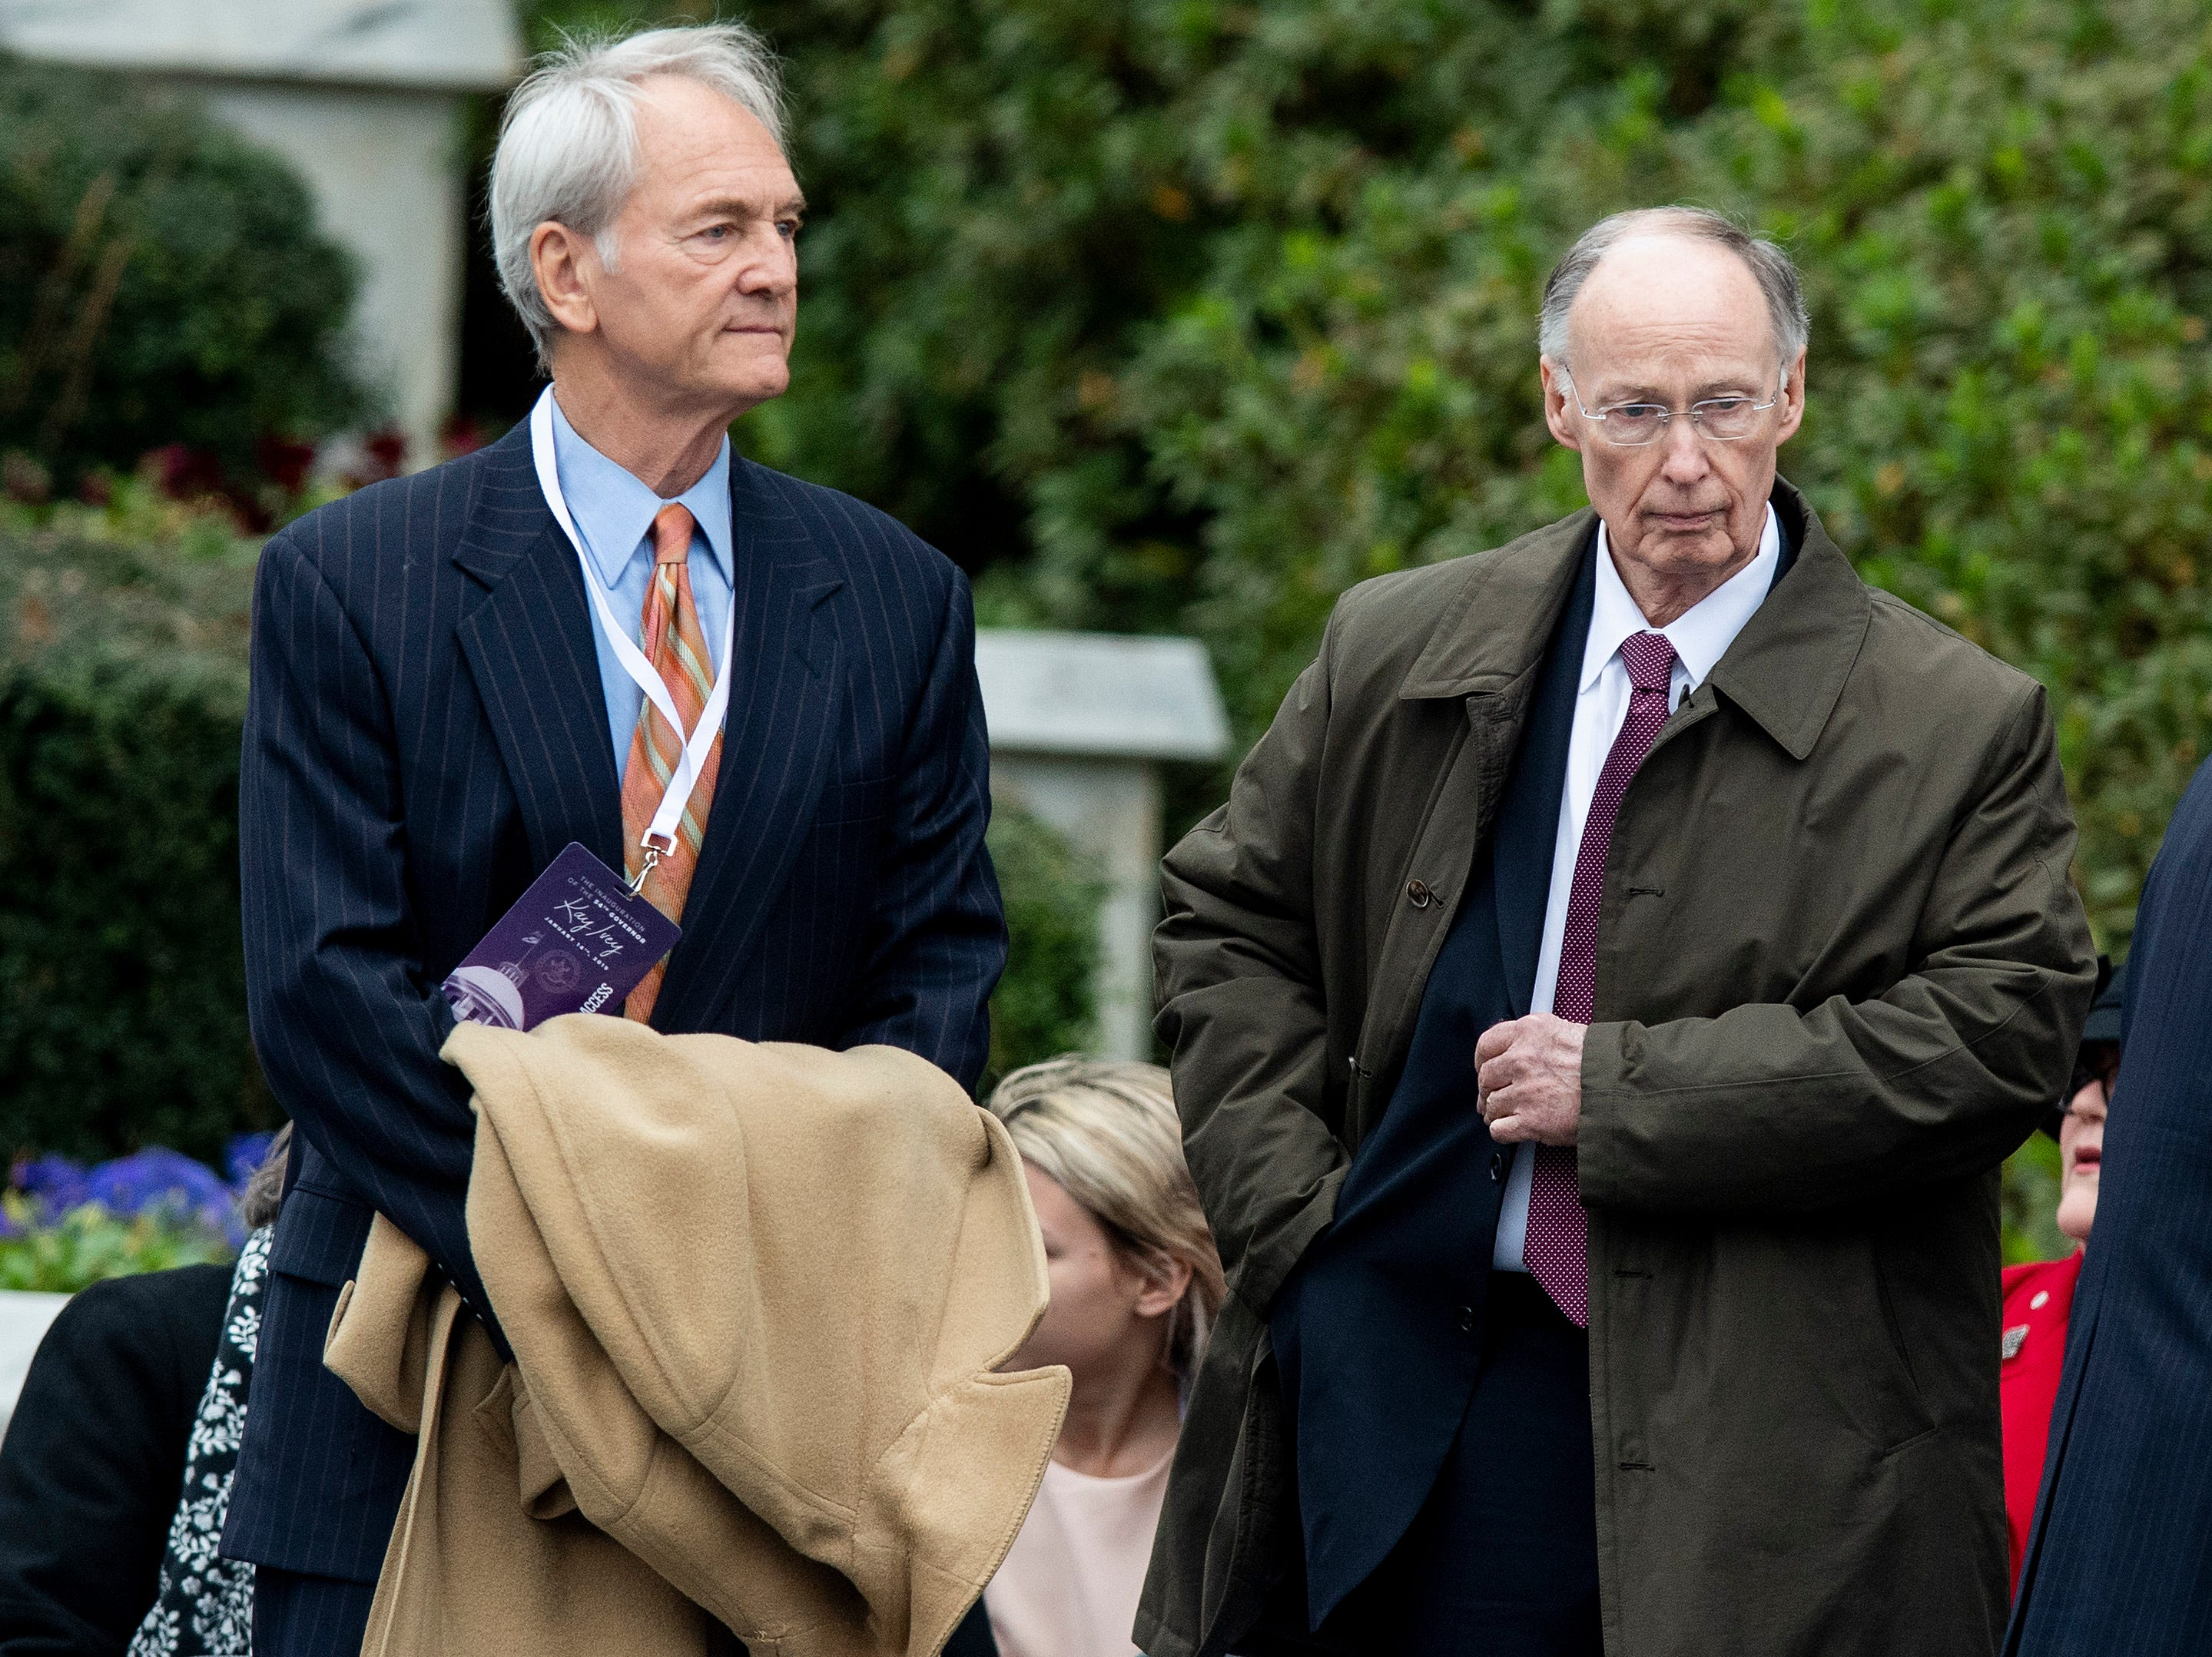 Former Alabama Governors, Don Siegelman, left, and Robert Bentley, right, arrive for the Inauguration of Governor Kay Ivey on the state capitol steps in Montgomery, Ala., on Monday January 14, 2019.